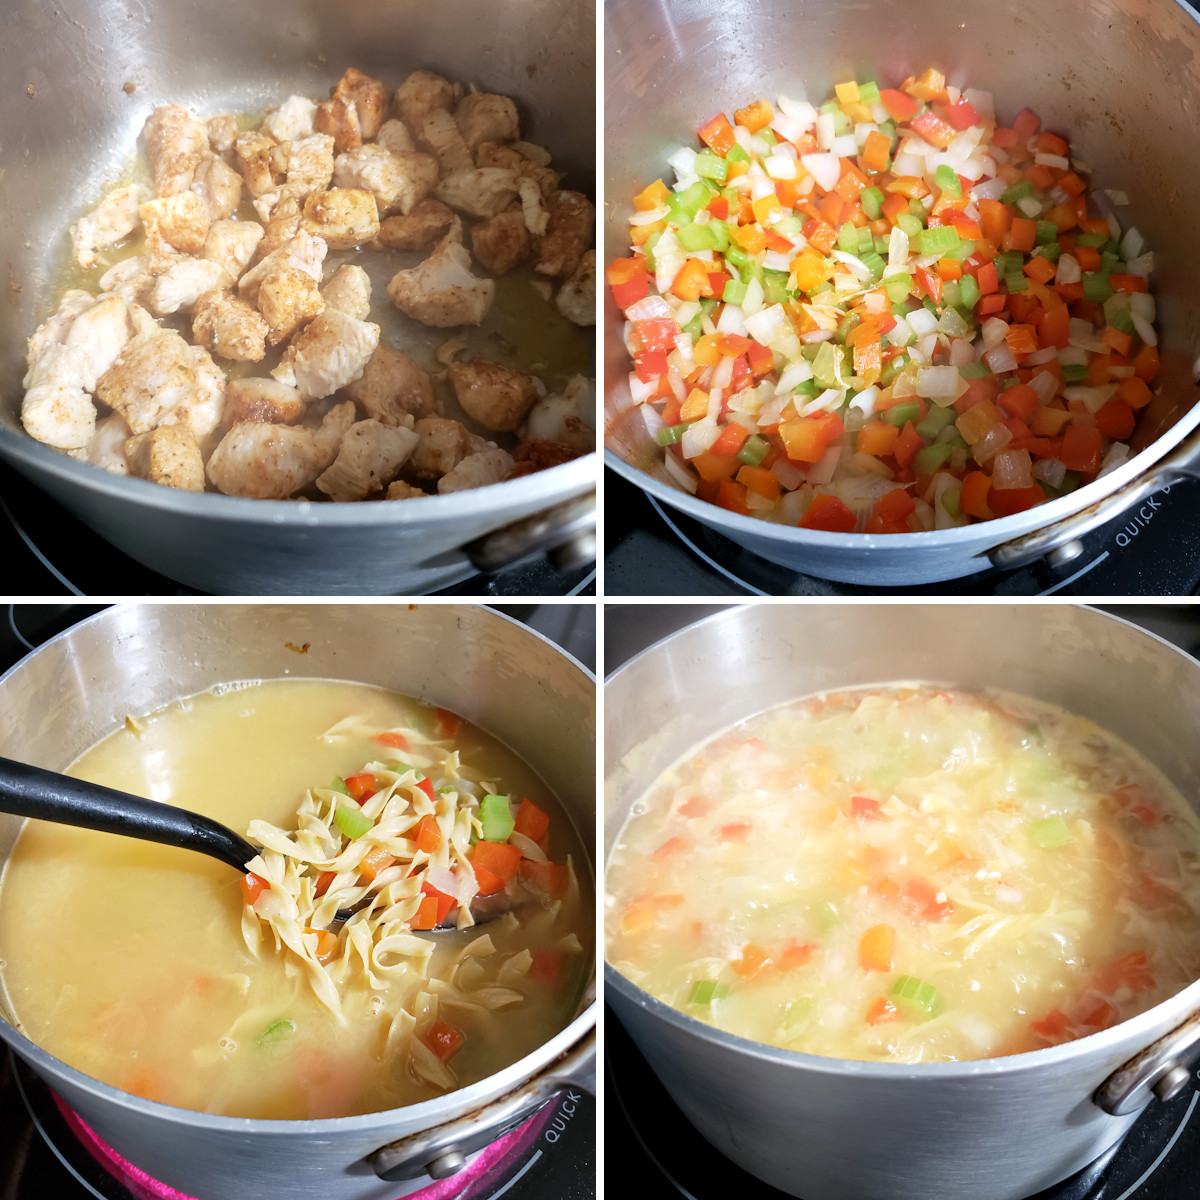 Cooking cajun chicken noodle soup in a pot on the stove.